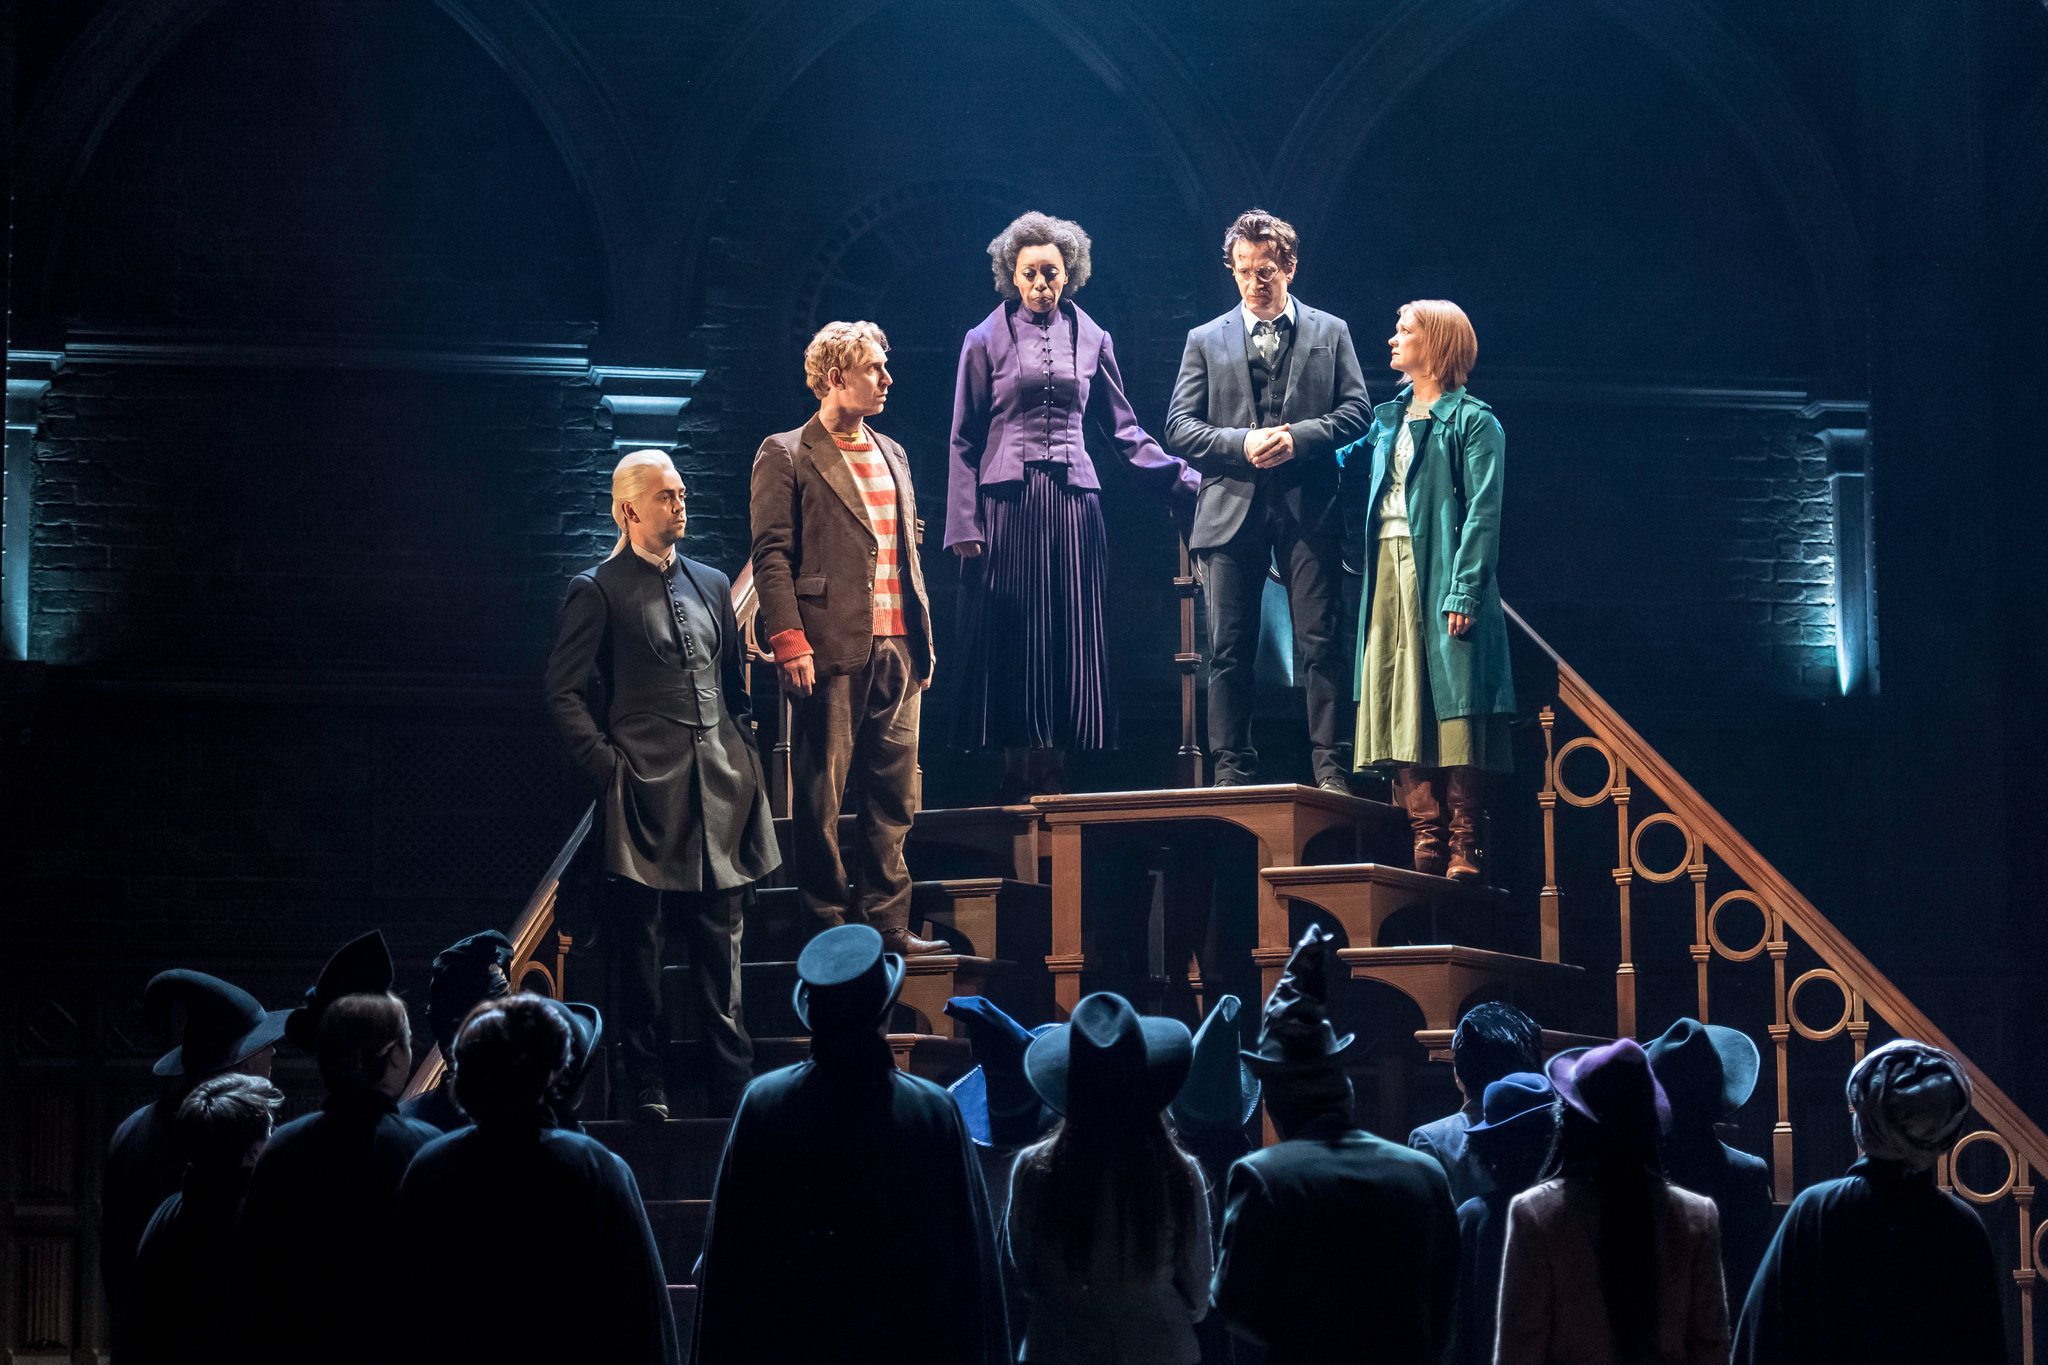 Harry Potter and The Cursed Child - Part 1 & 2 (10/29 7:30PM & 10/30 7:30PM) at Lyric Theatre